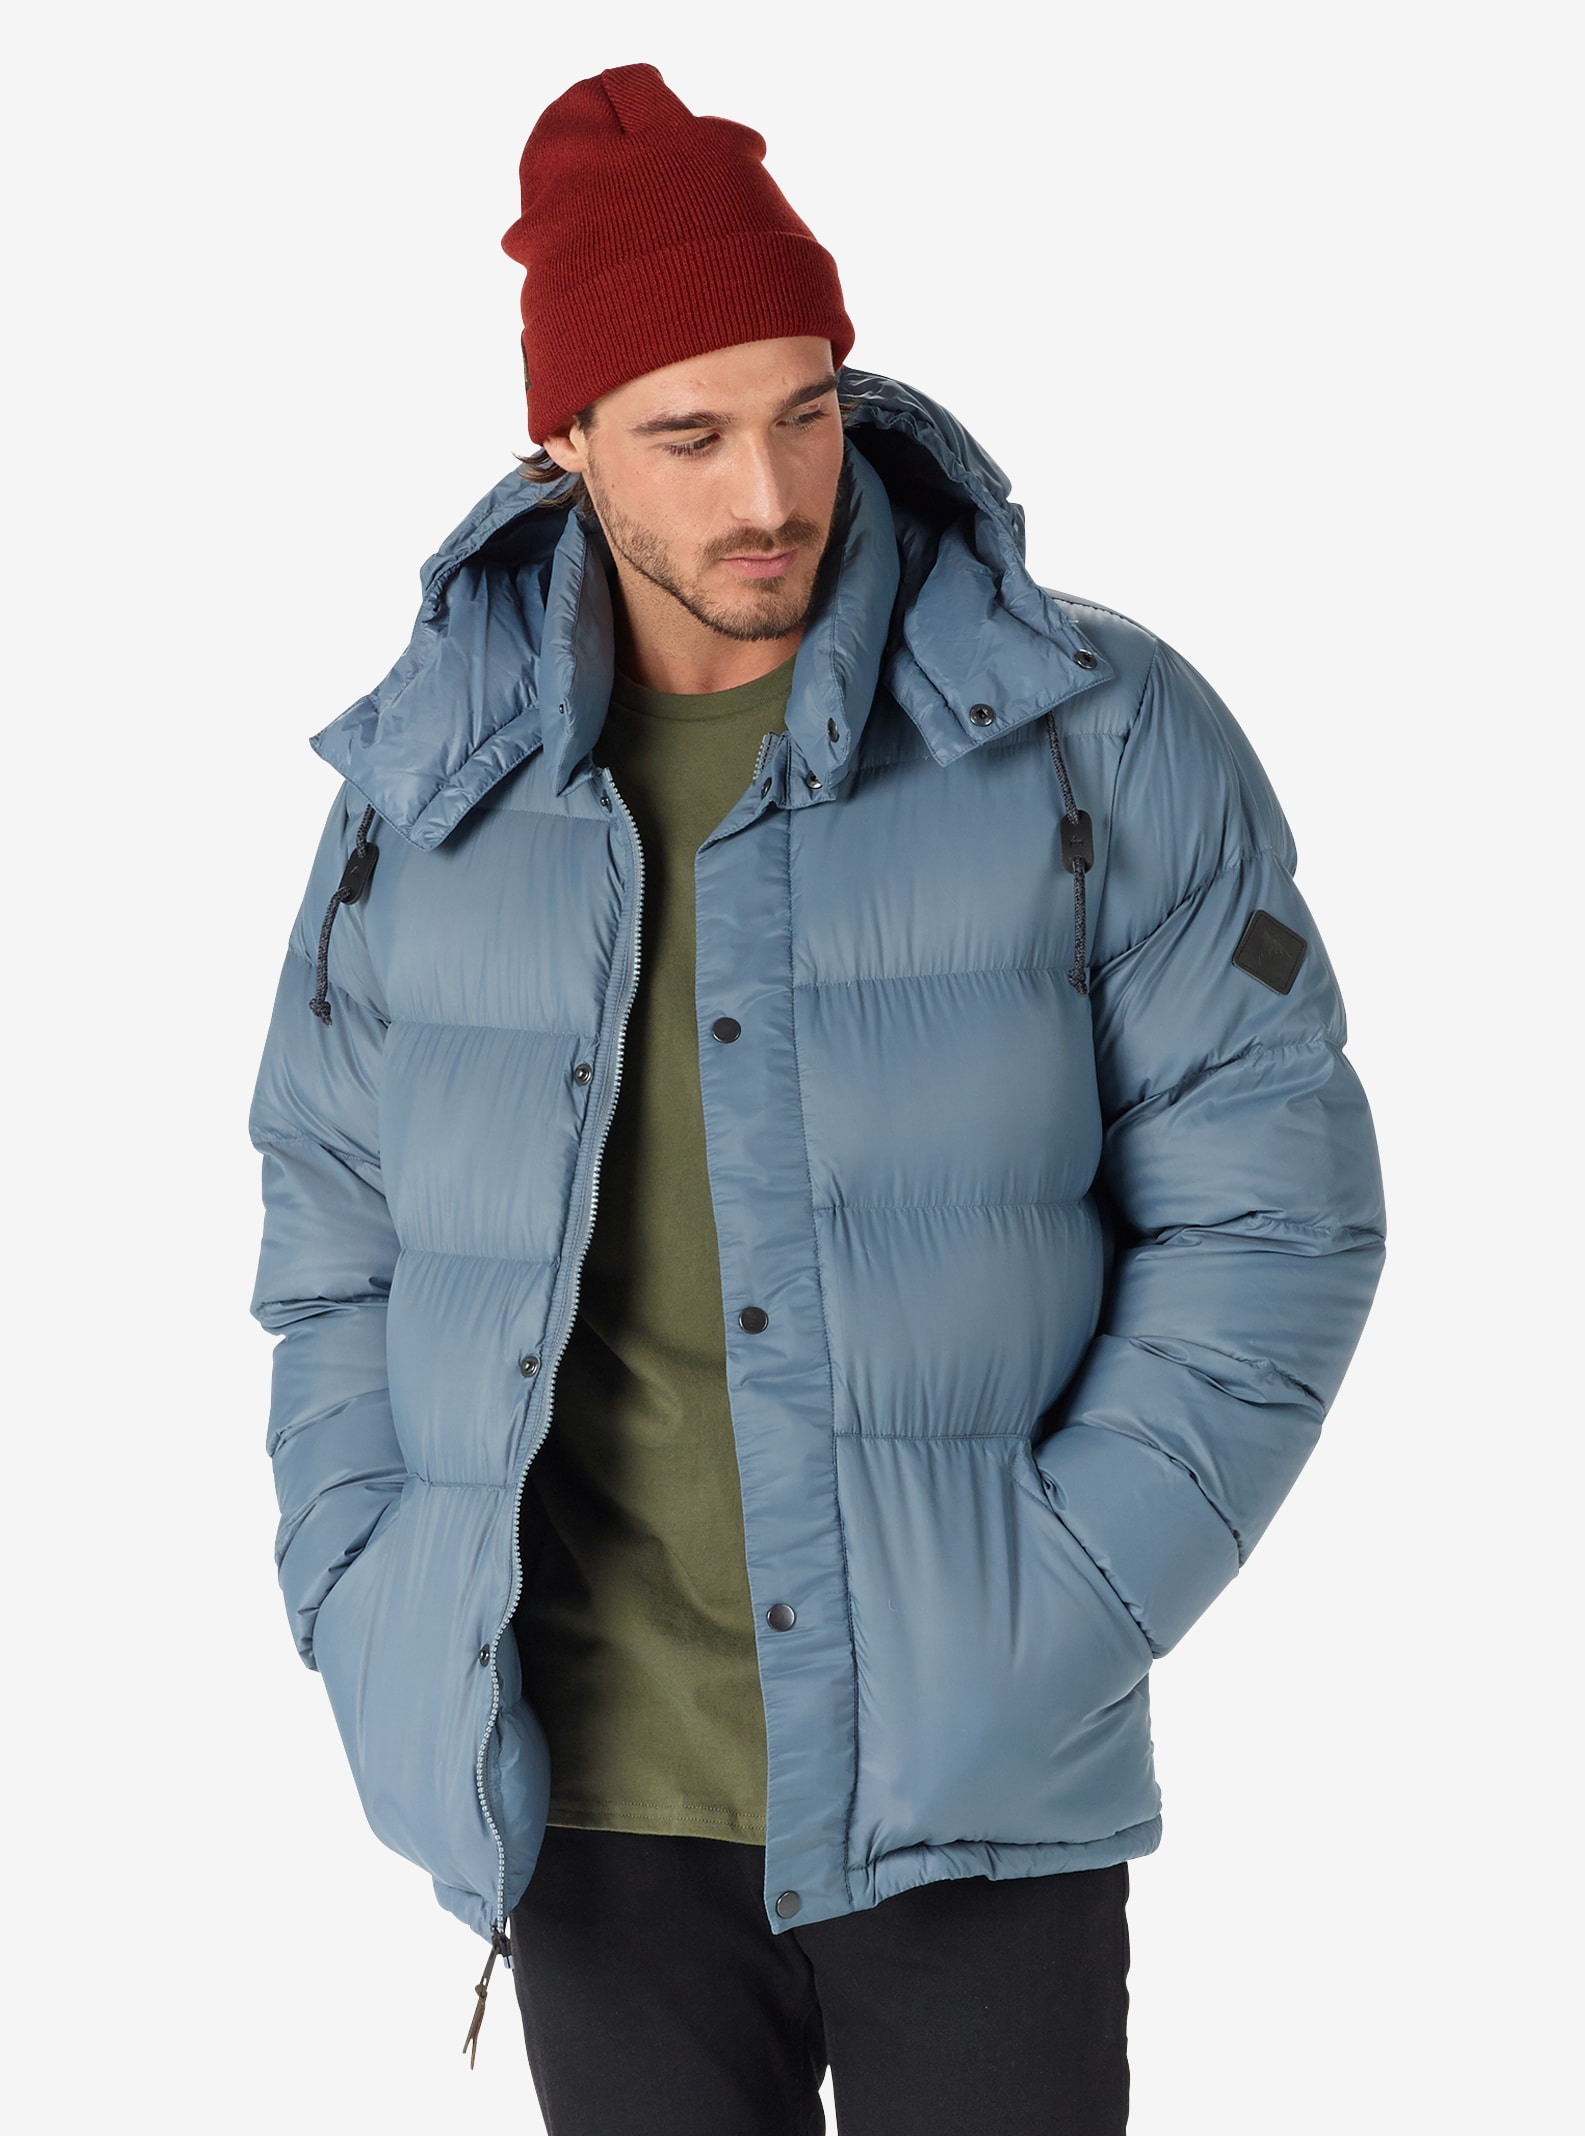 Men's Burton Heritage Down Jacket shown in LA Sky